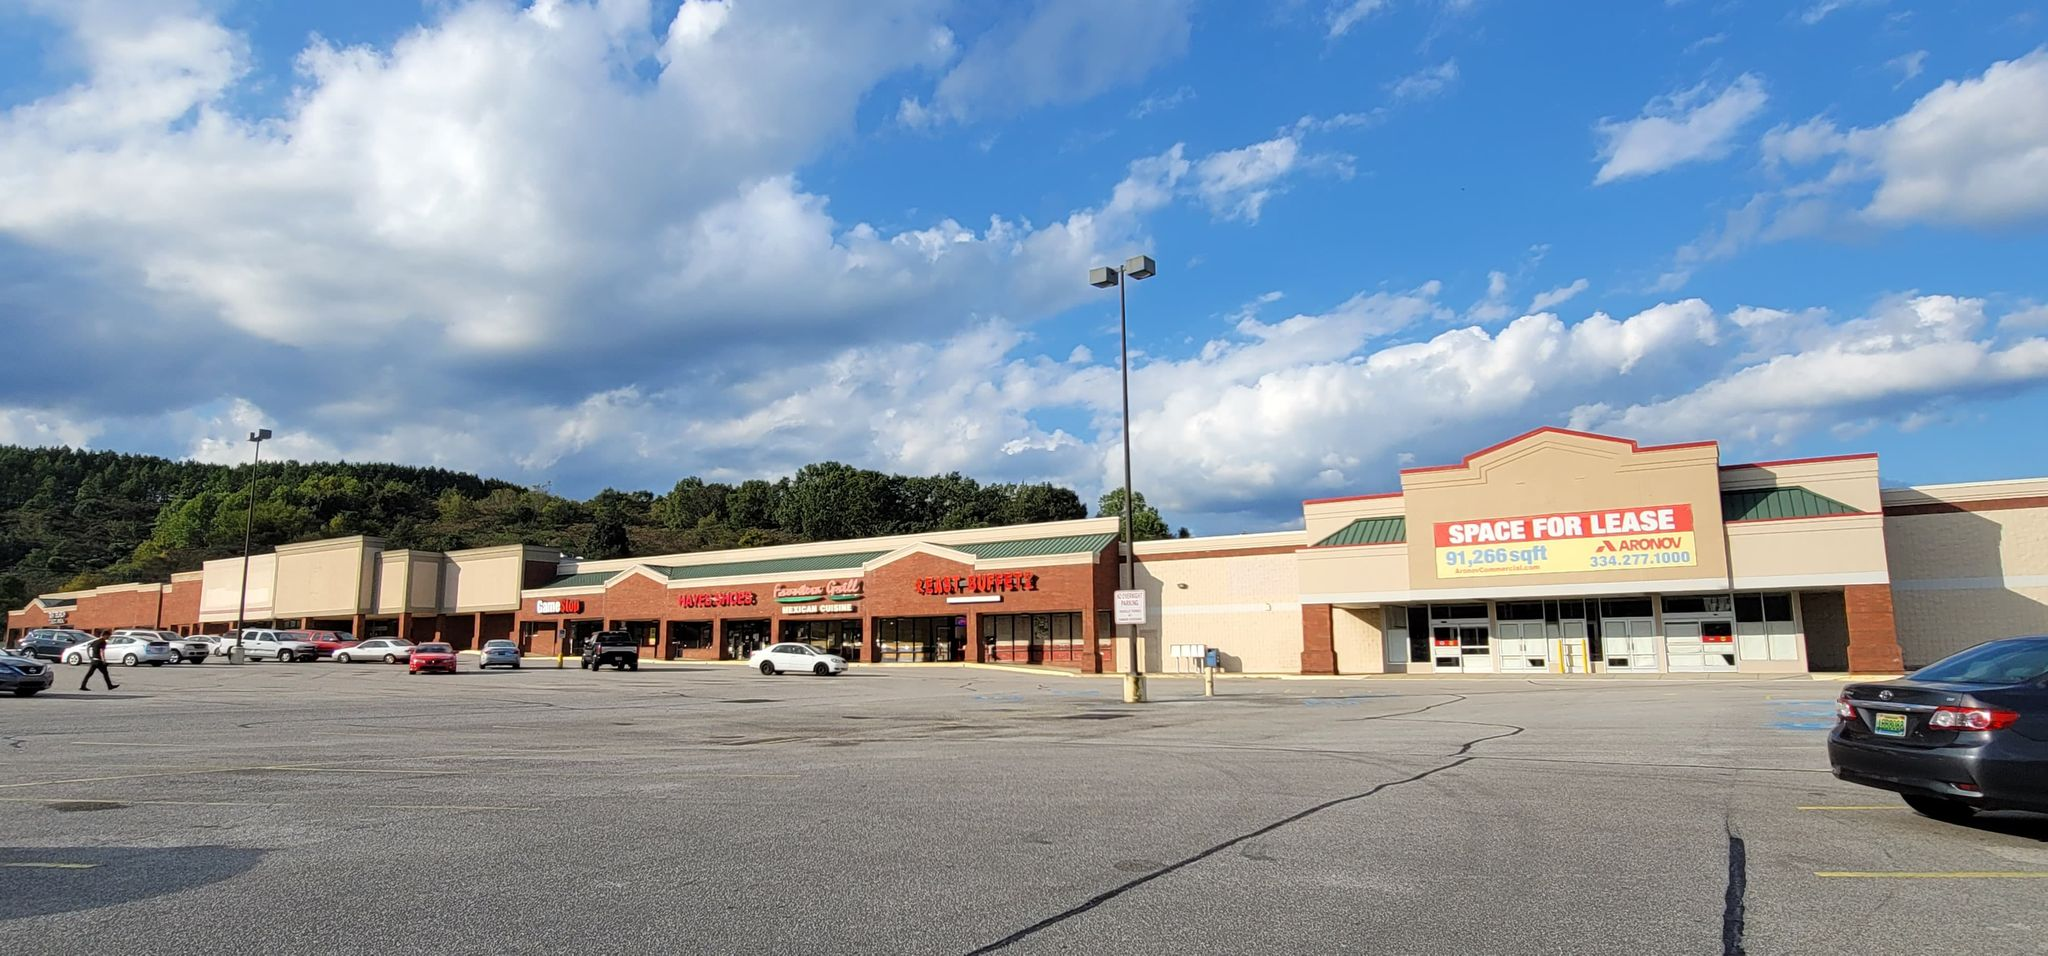 New anchor store announced for Trussville Shopping Center